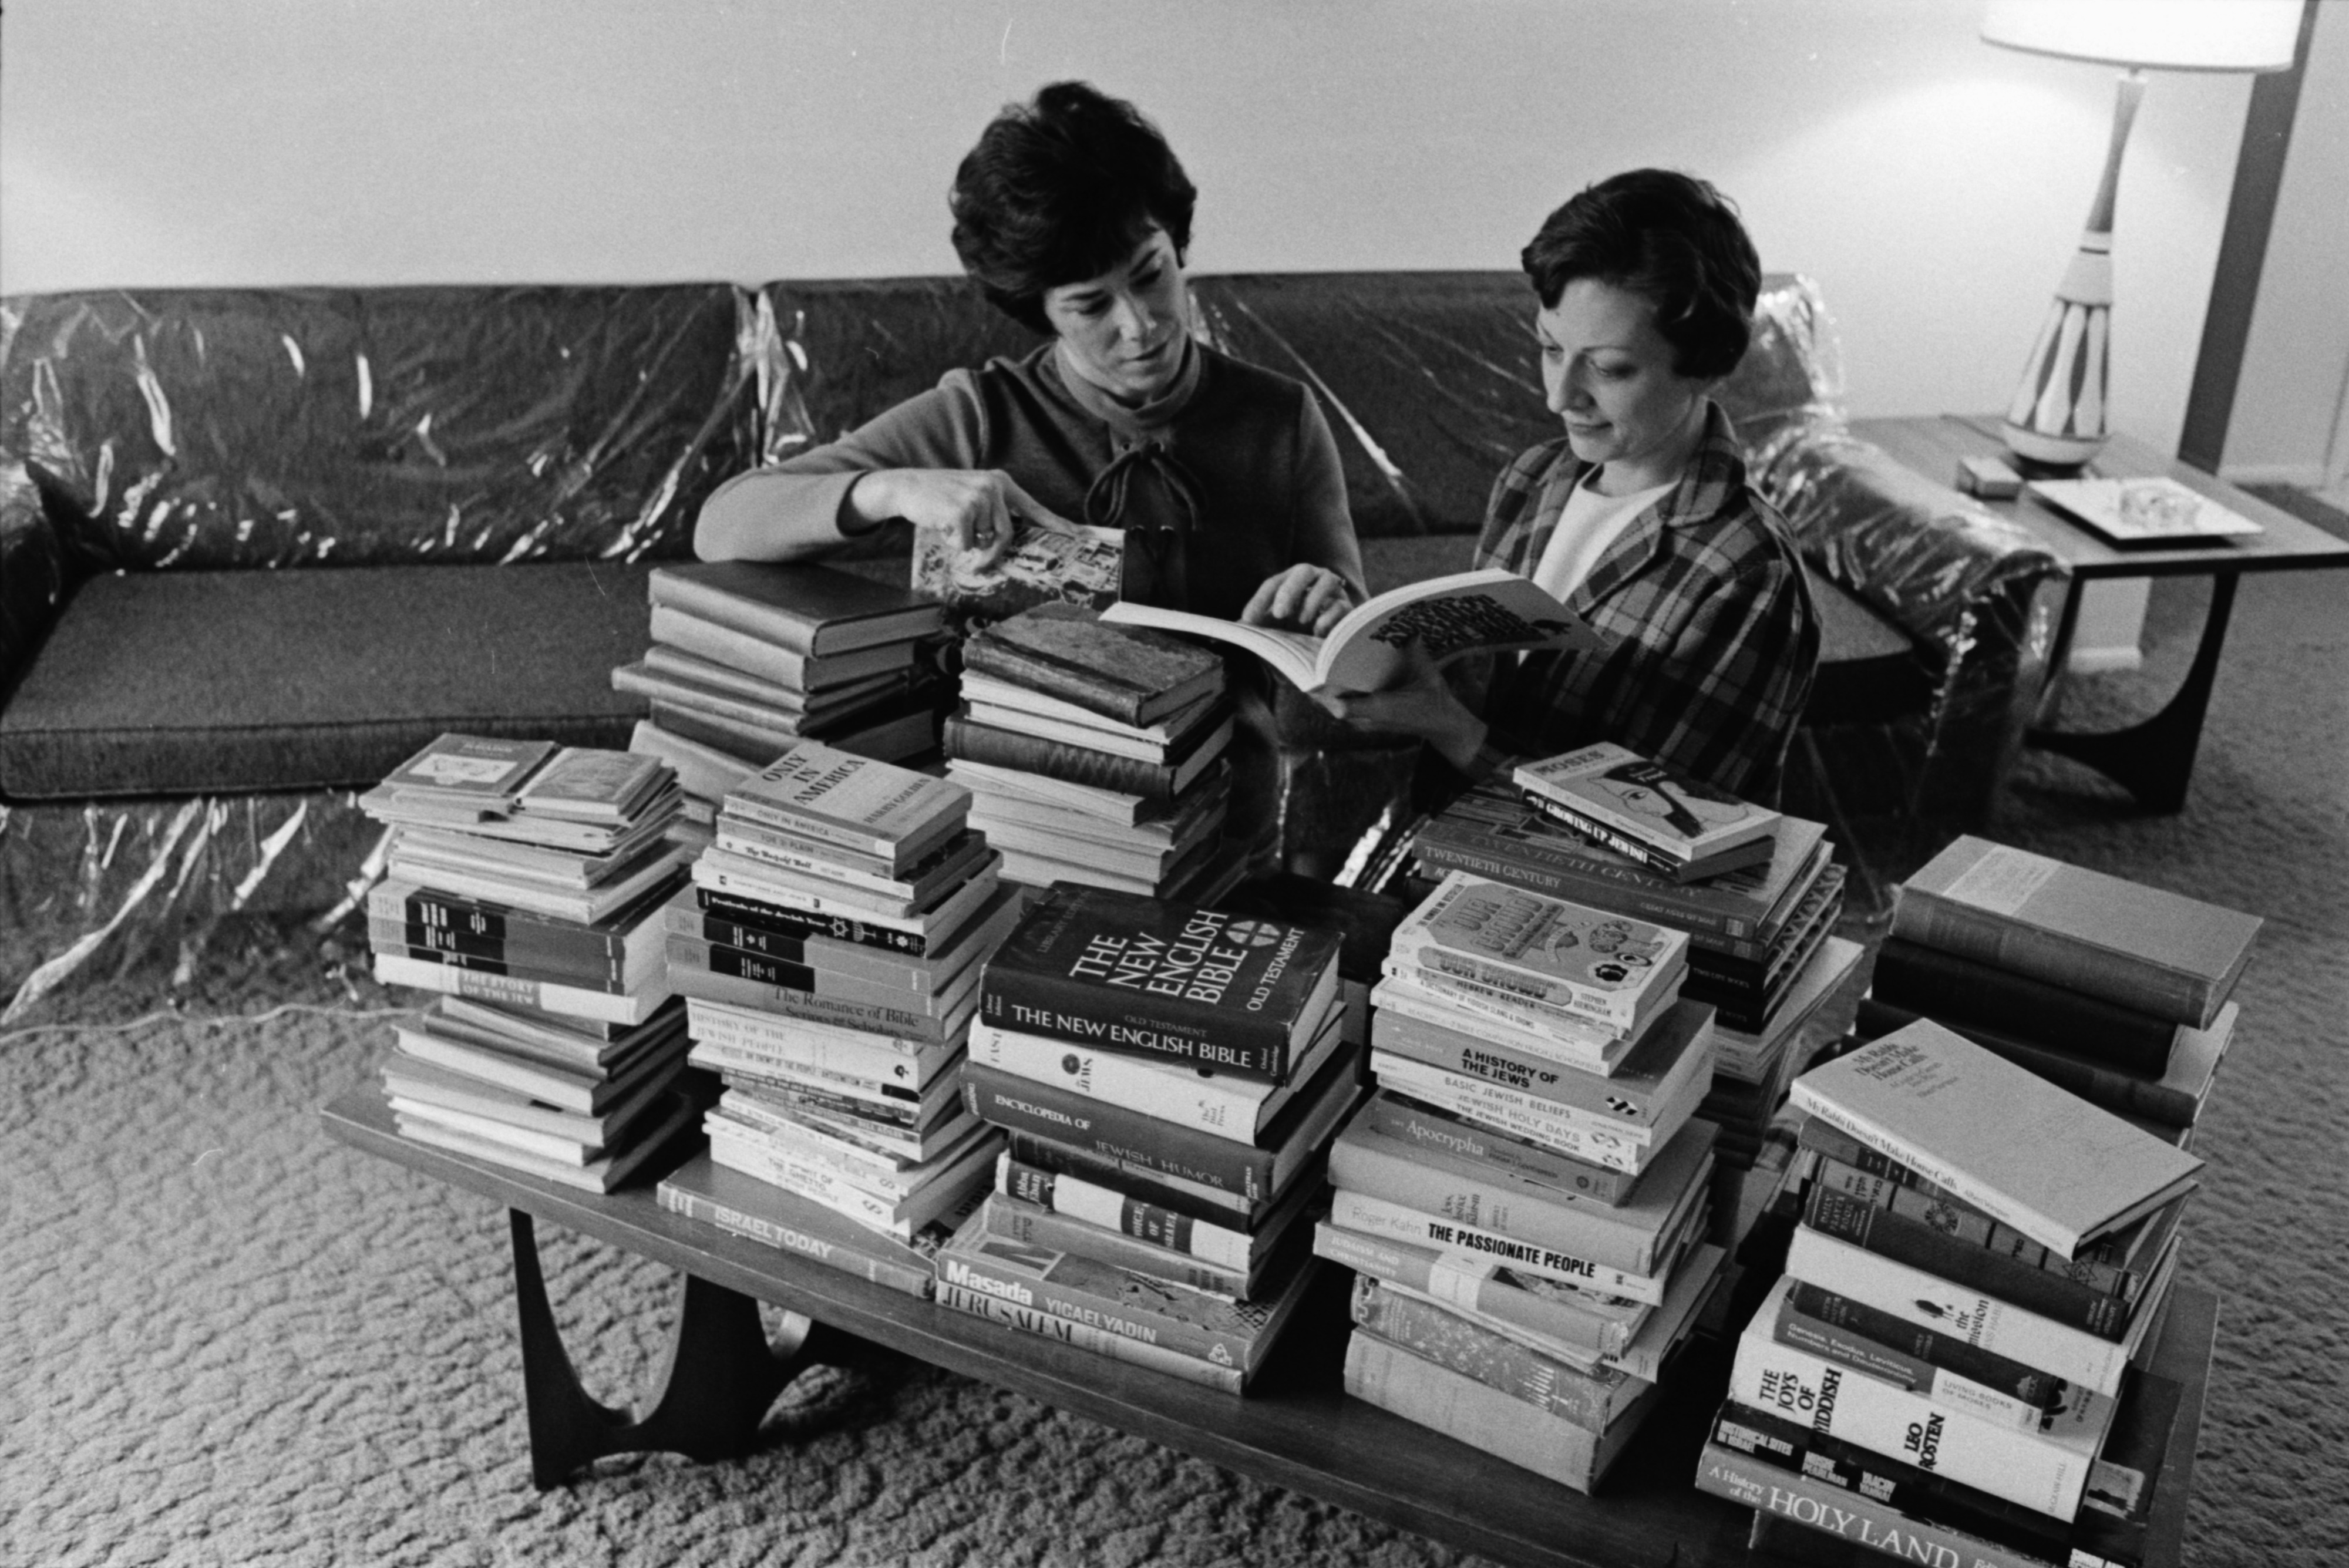 Cecile Chusid and Malverne Reinhart Organize Books for Temple Beth Emeth's Jewish Book Fair, March 1972 image